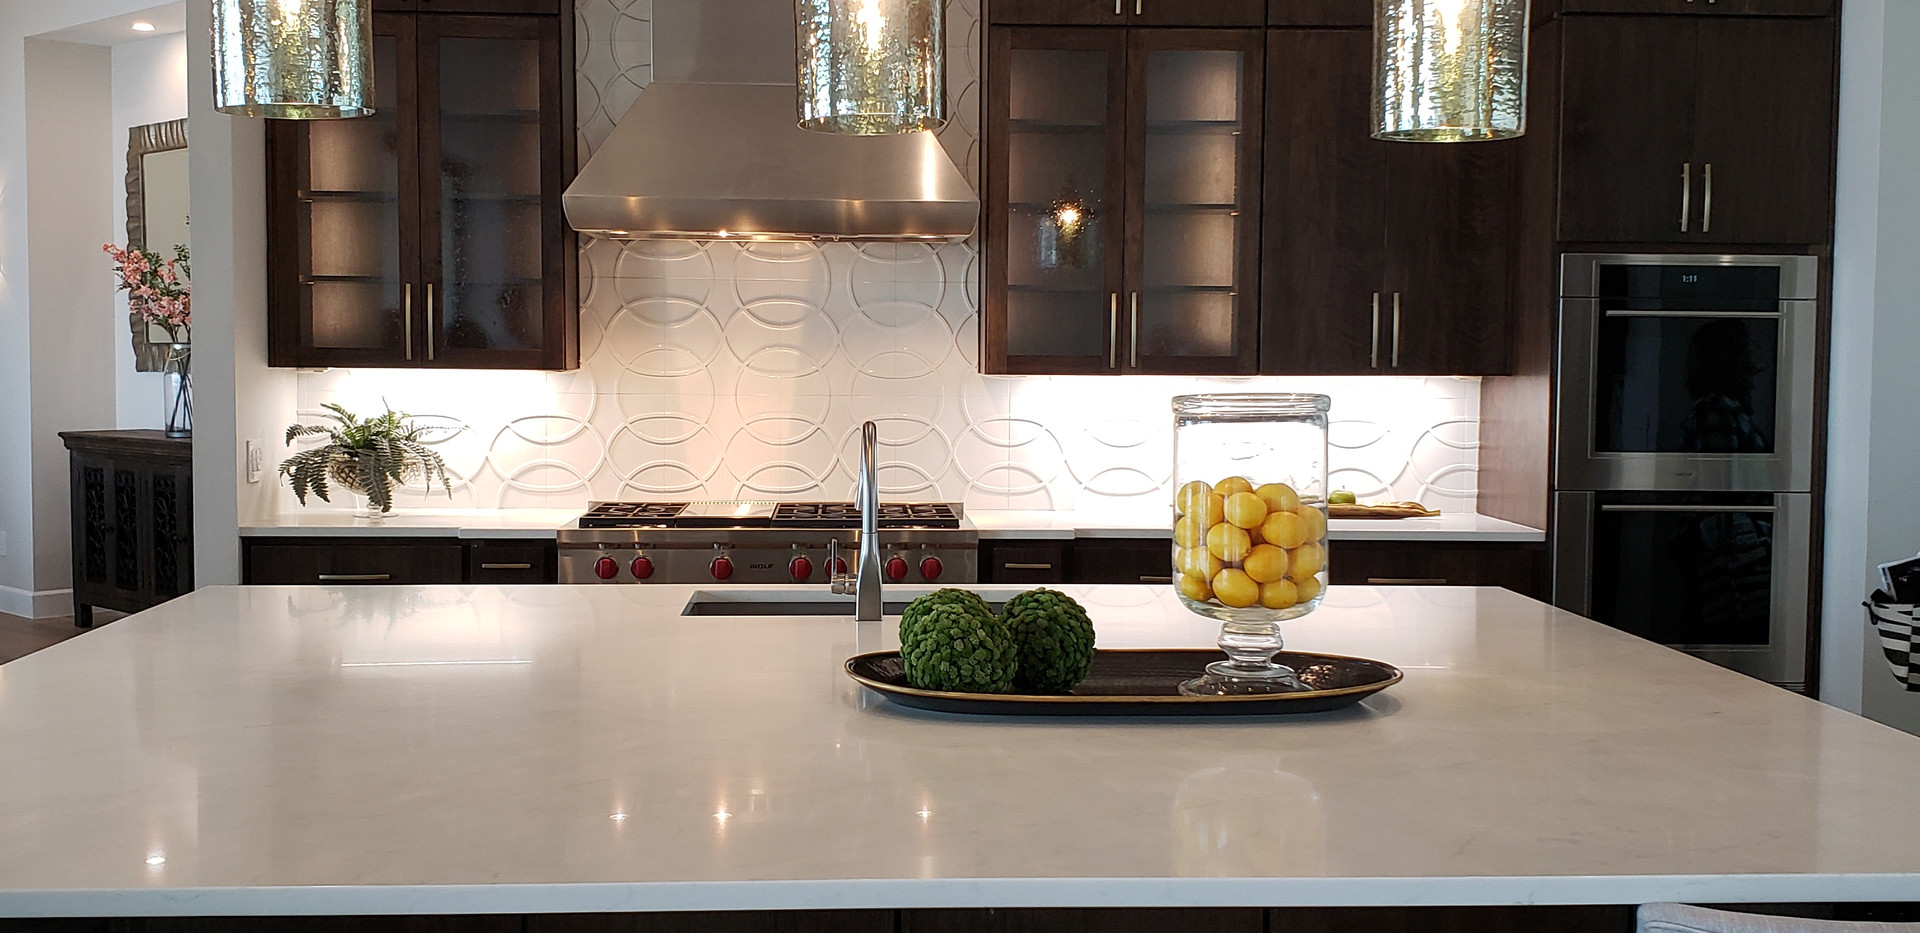 Parade of Homes Austin - Kitchen